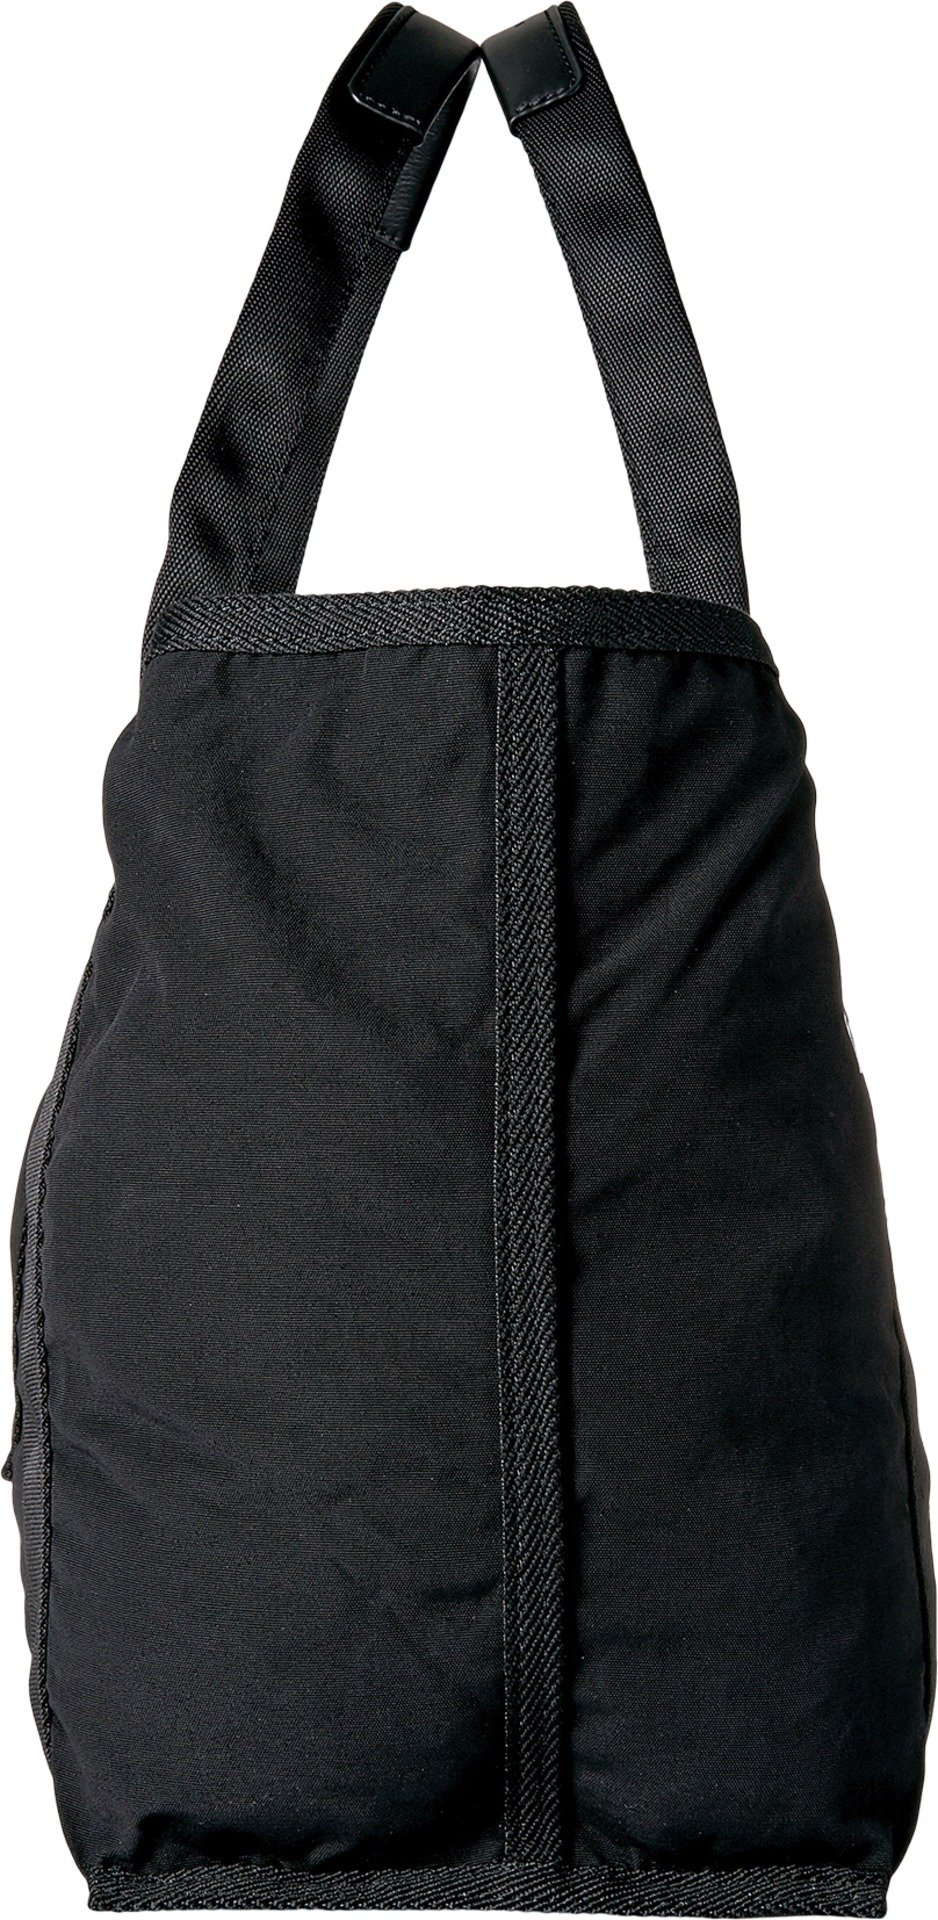 Marc Jacobs Women's New Logo Small Tote, Black by Marc Jacobs (Image #3)